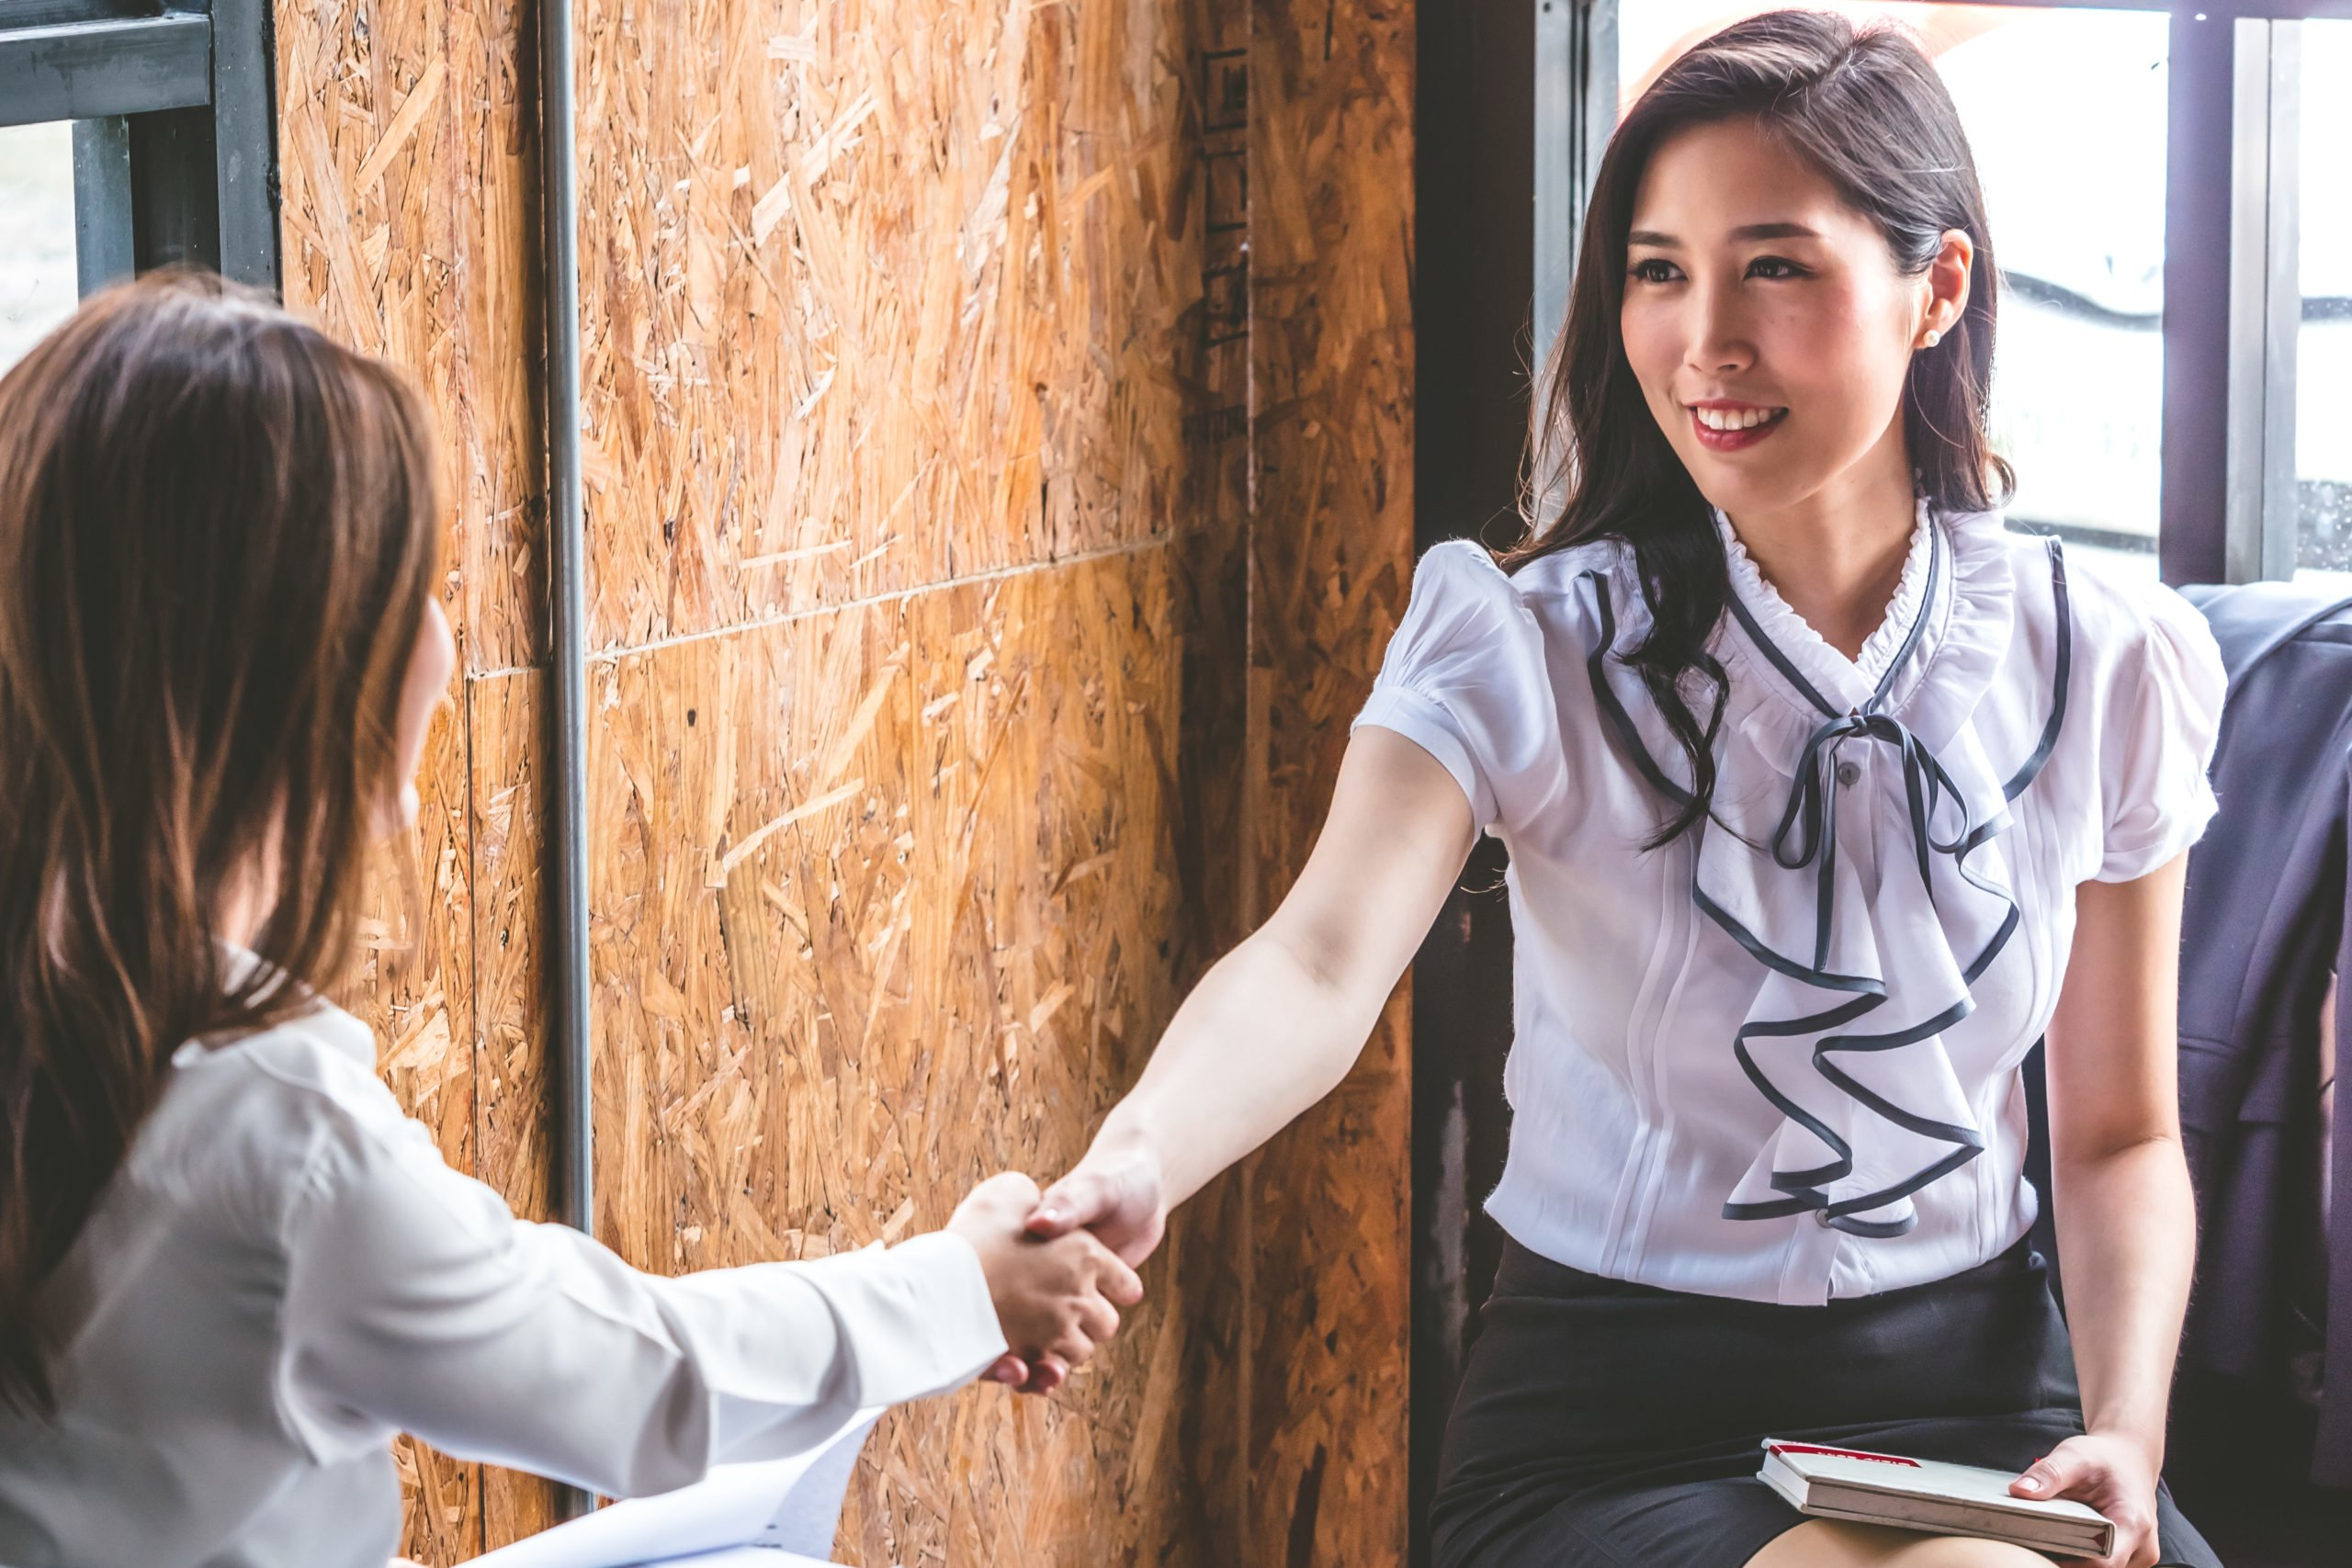 Successful business people shaking hands, finishing up a meeting.